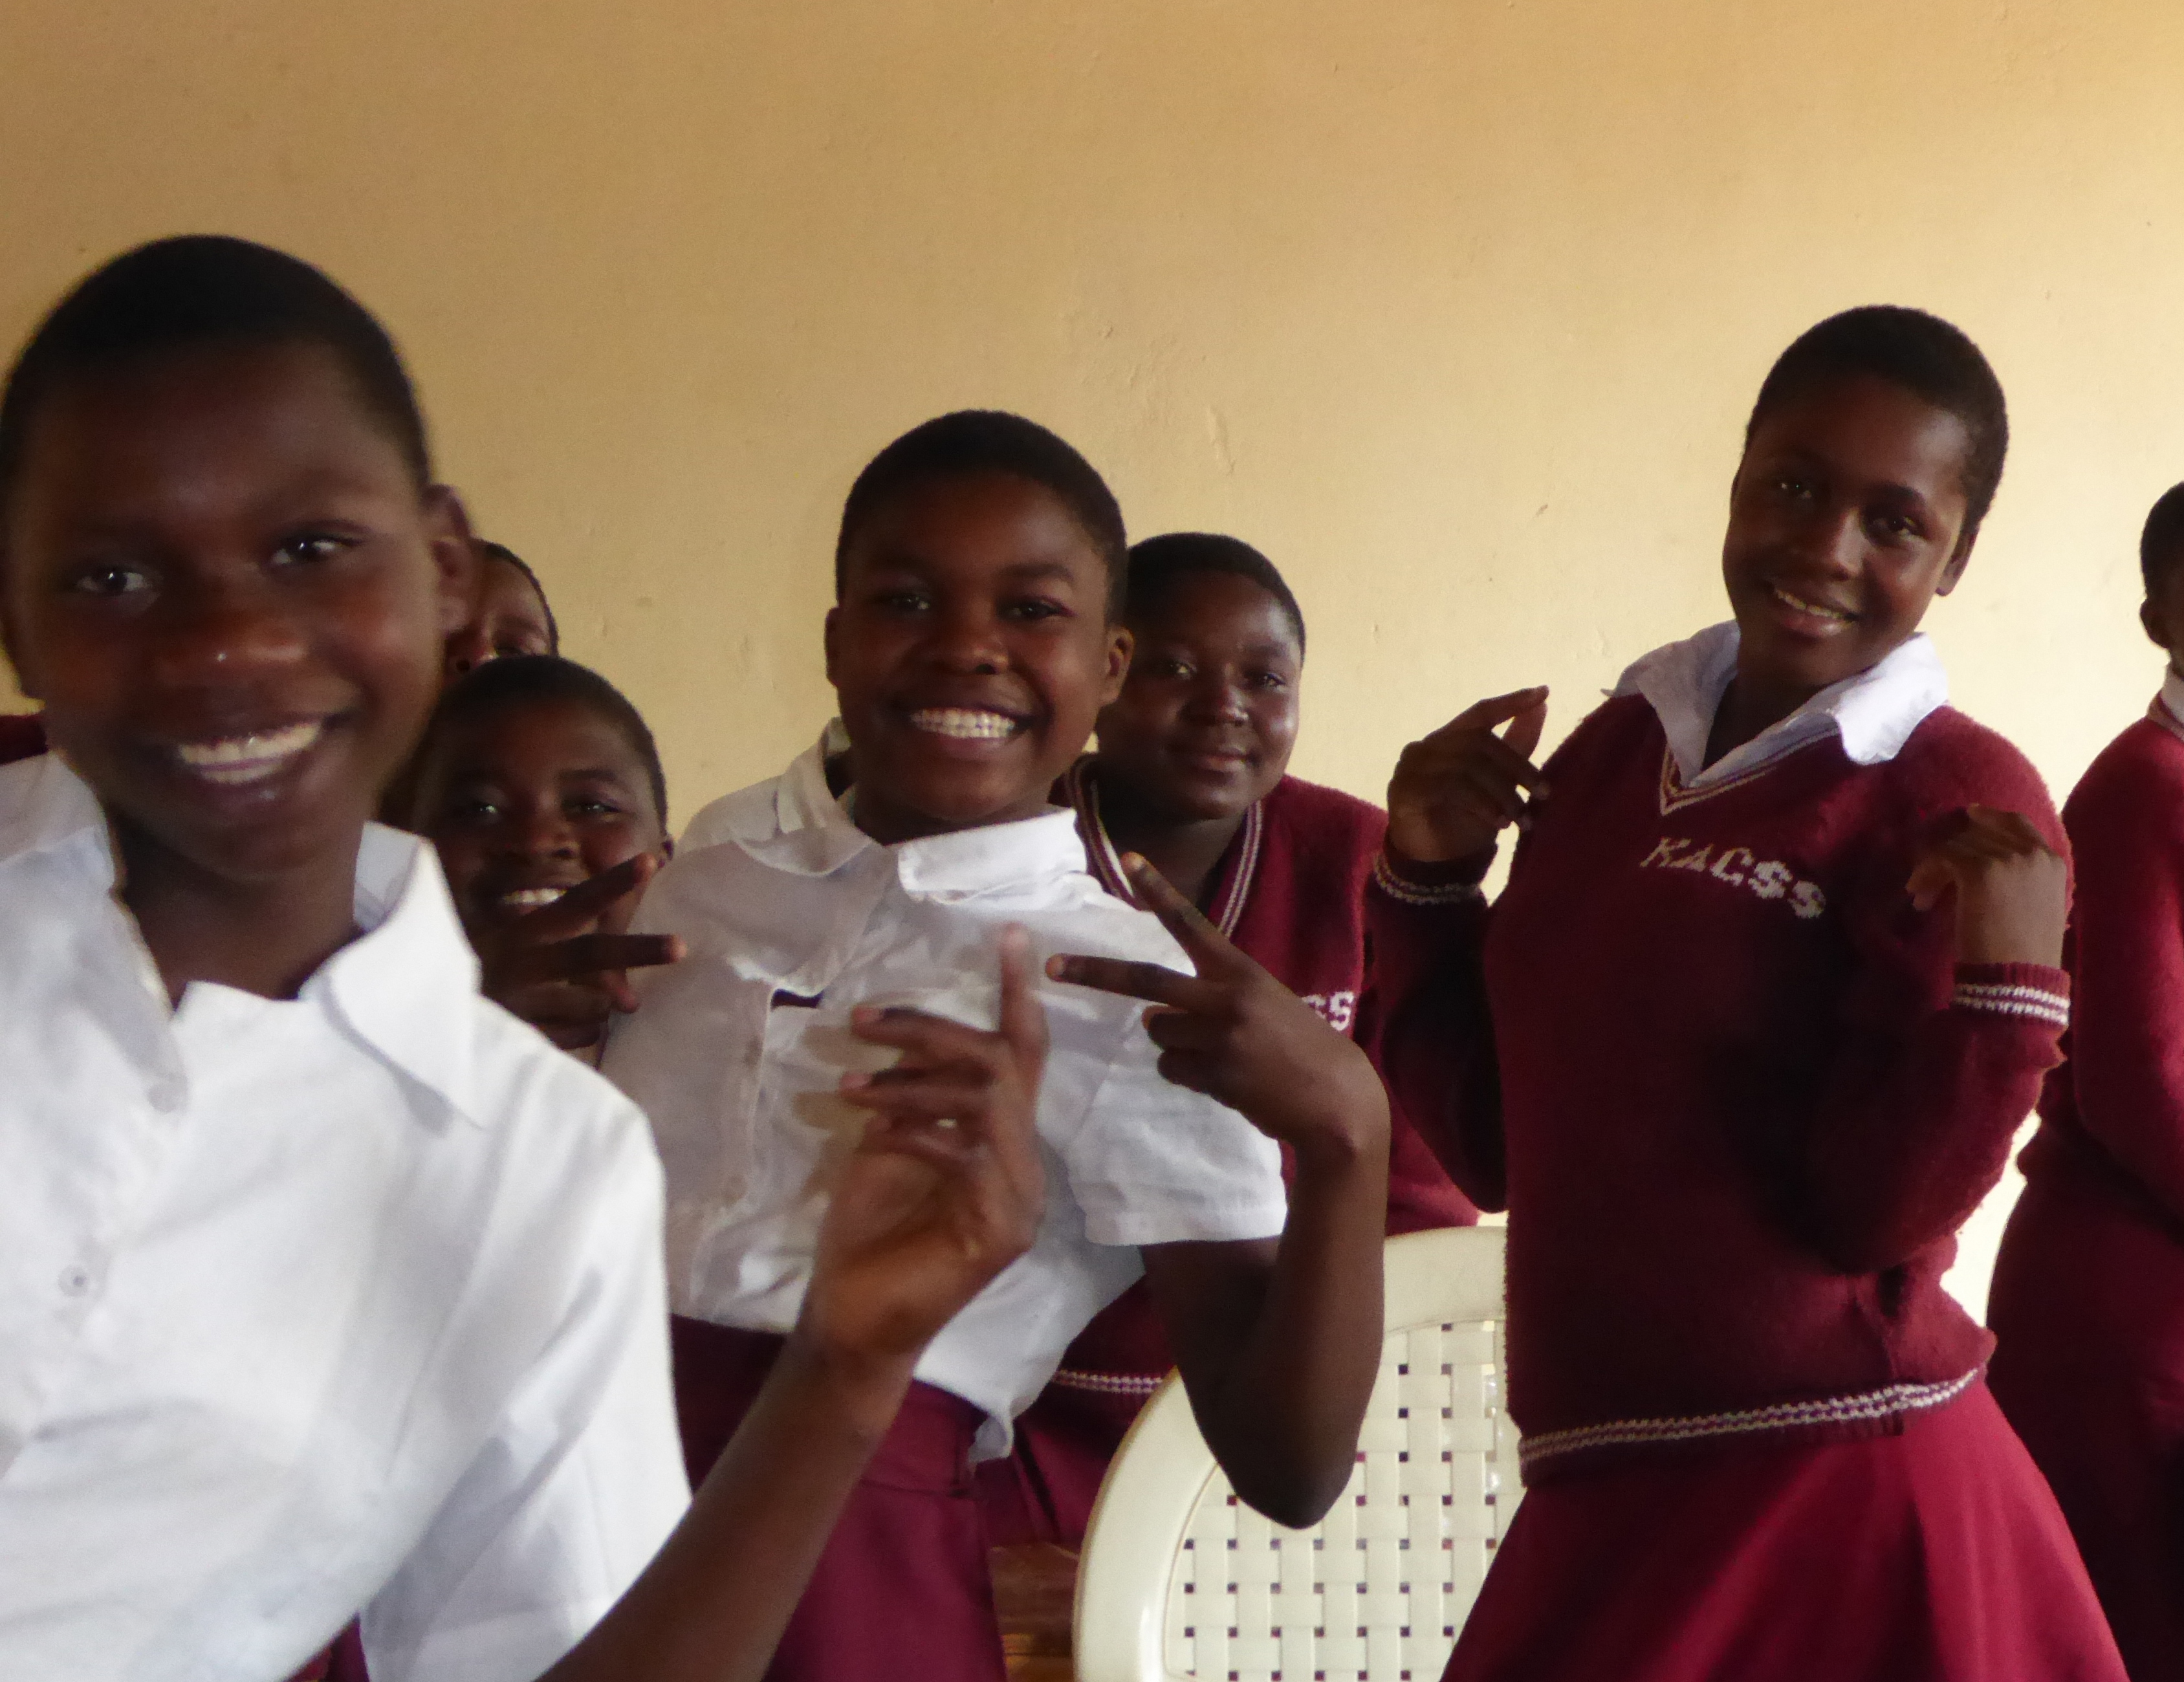 Karonga girls are delighted to pose for the camera